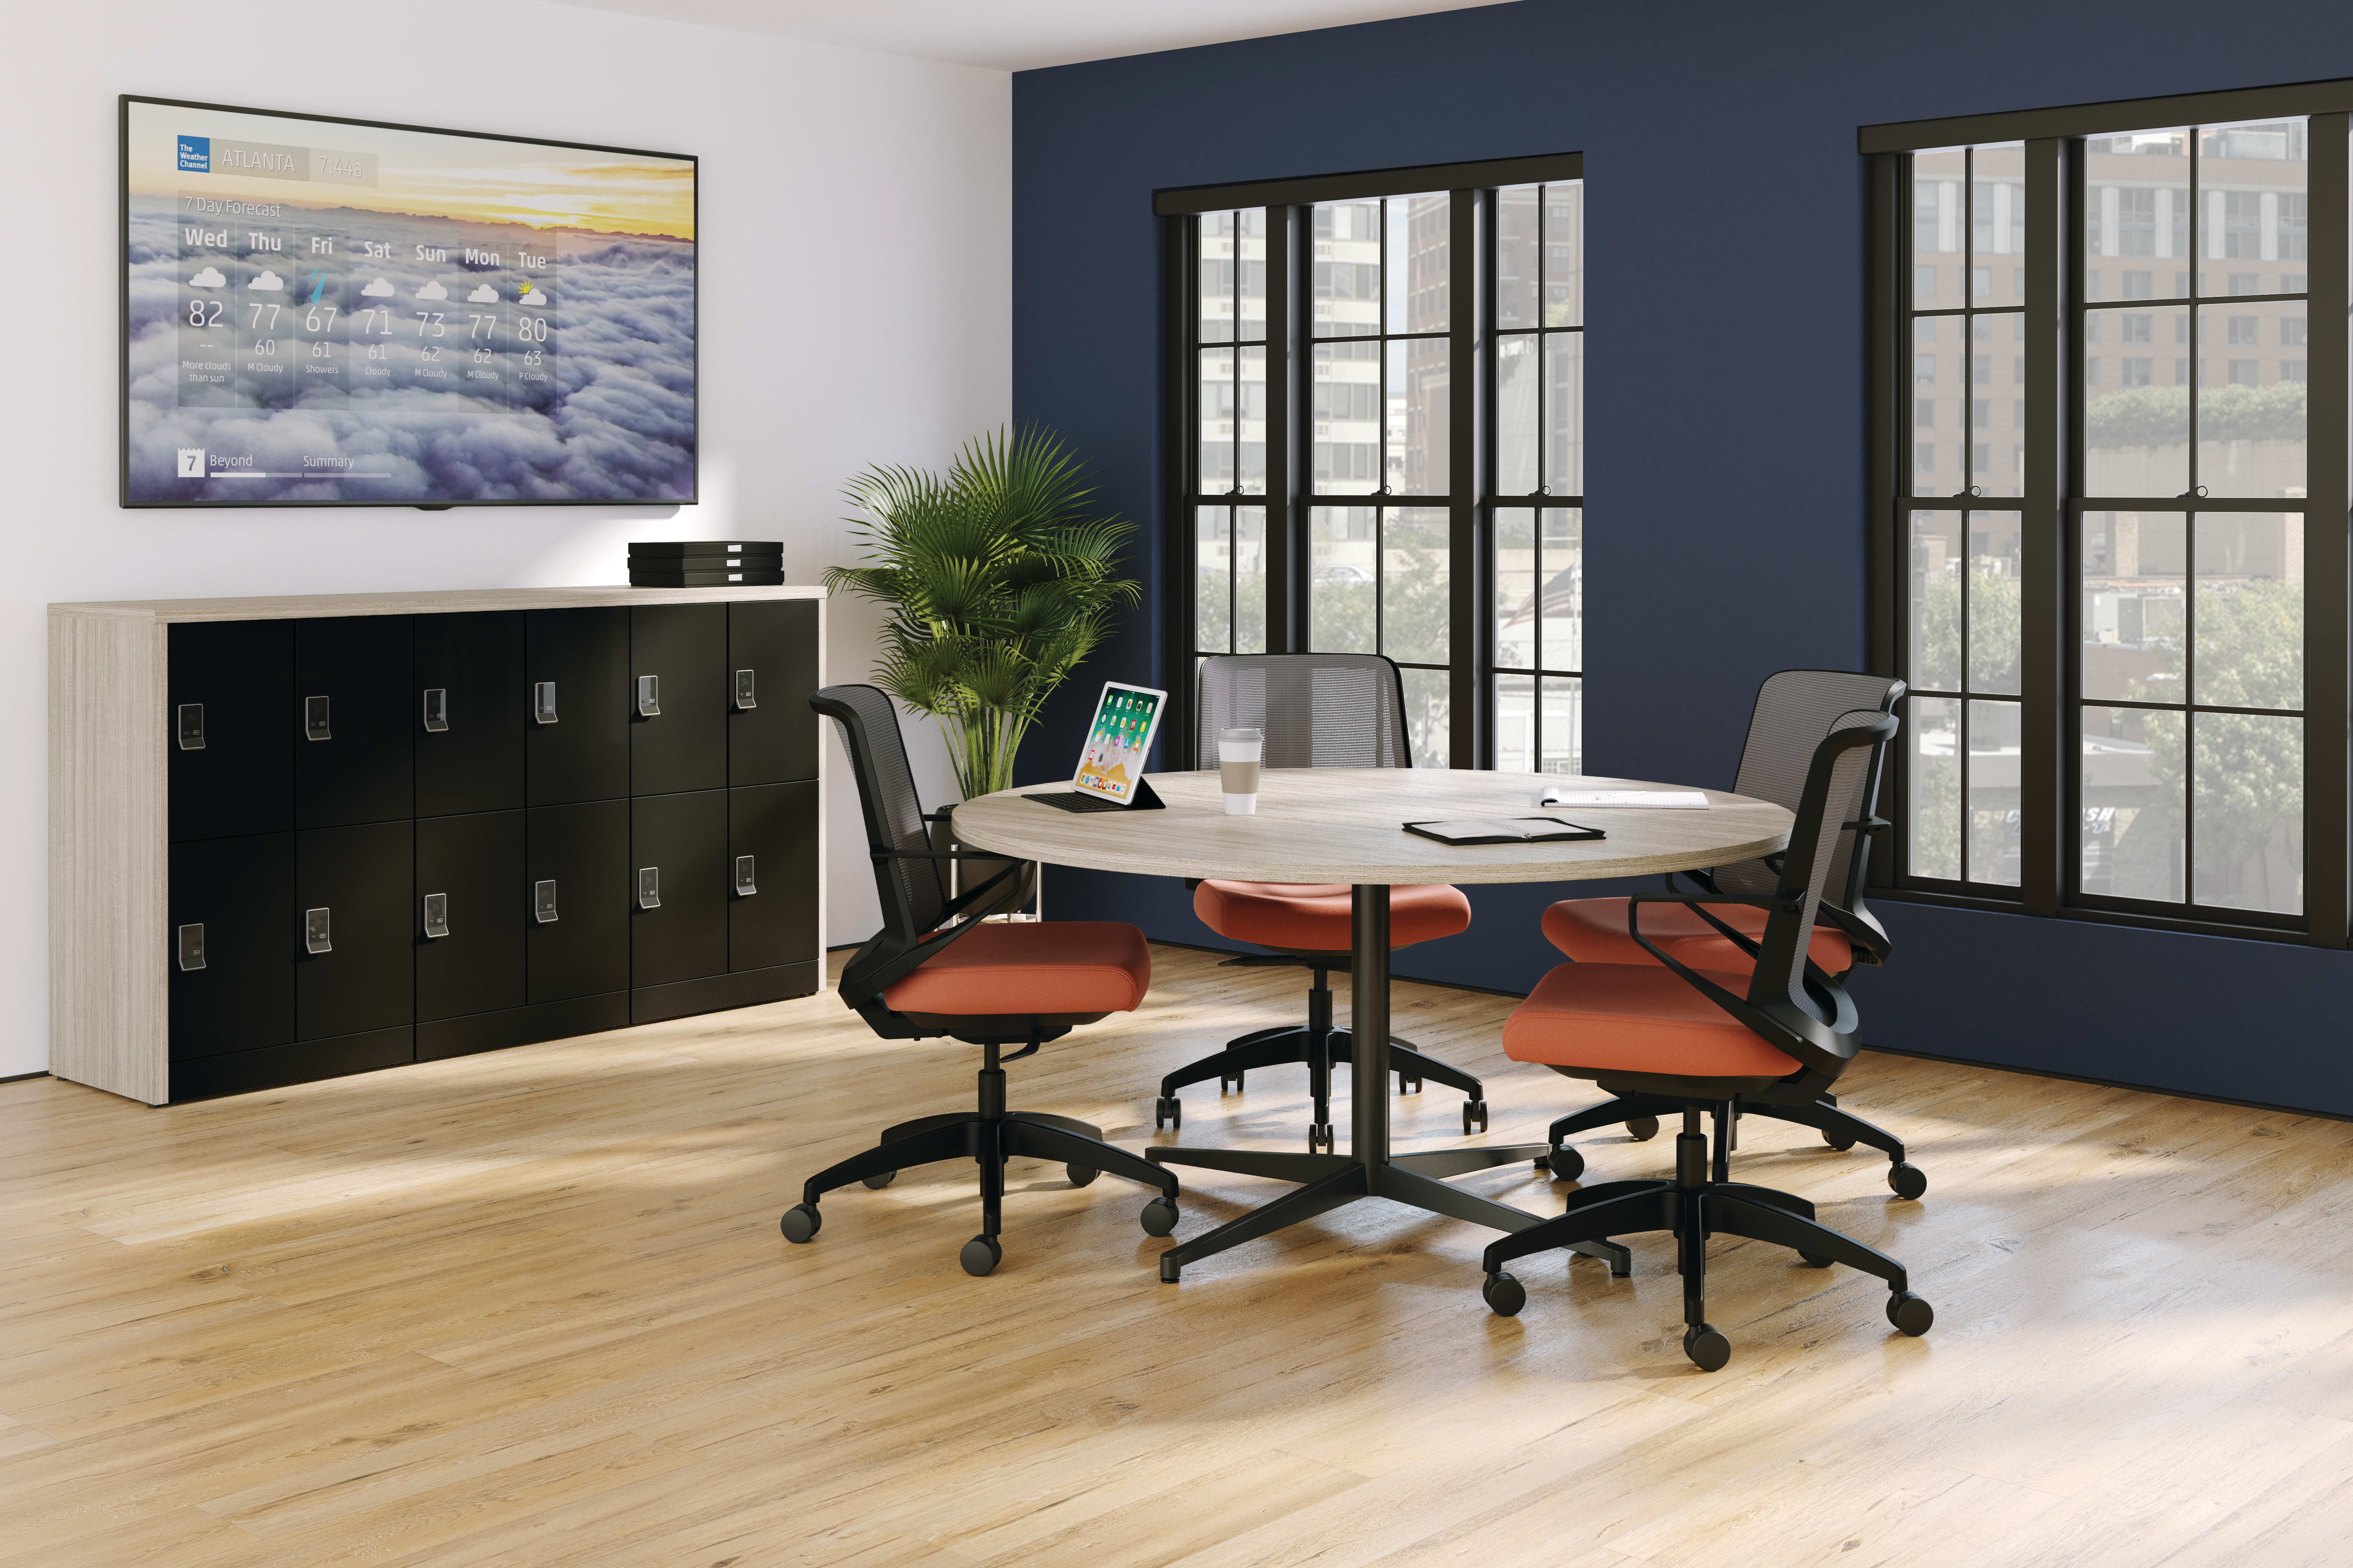 Preside Conference Table, Cliq Task Seating, Contain Lockers with Storage Islands.